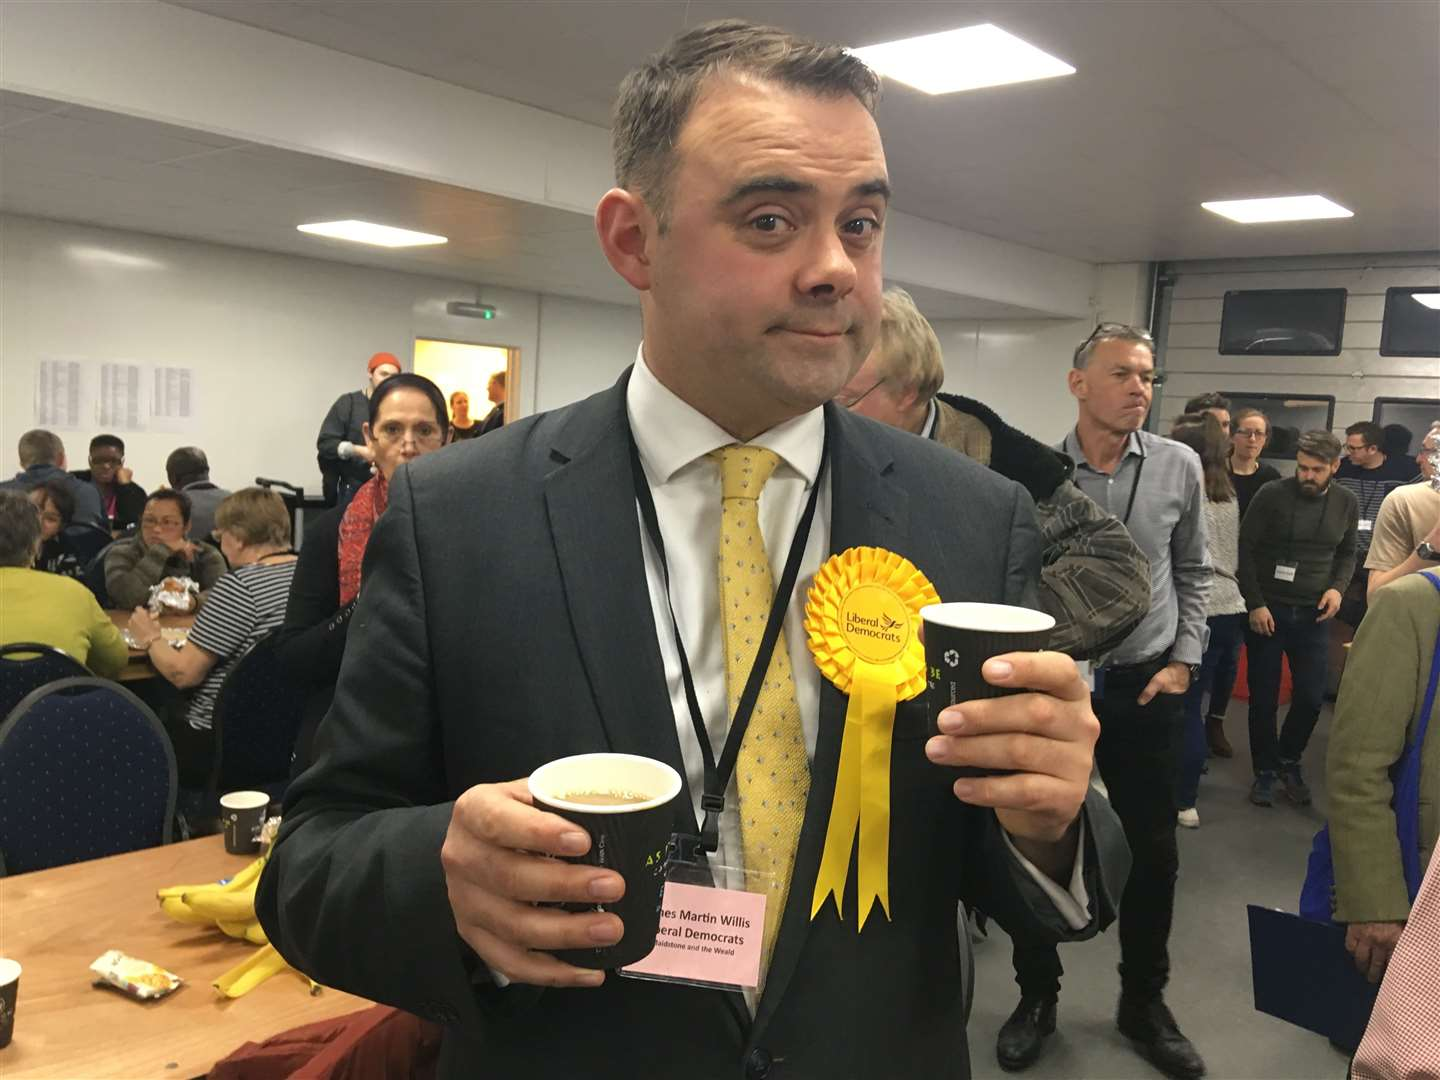 Lib Dem James Willis and his two cups of coffee